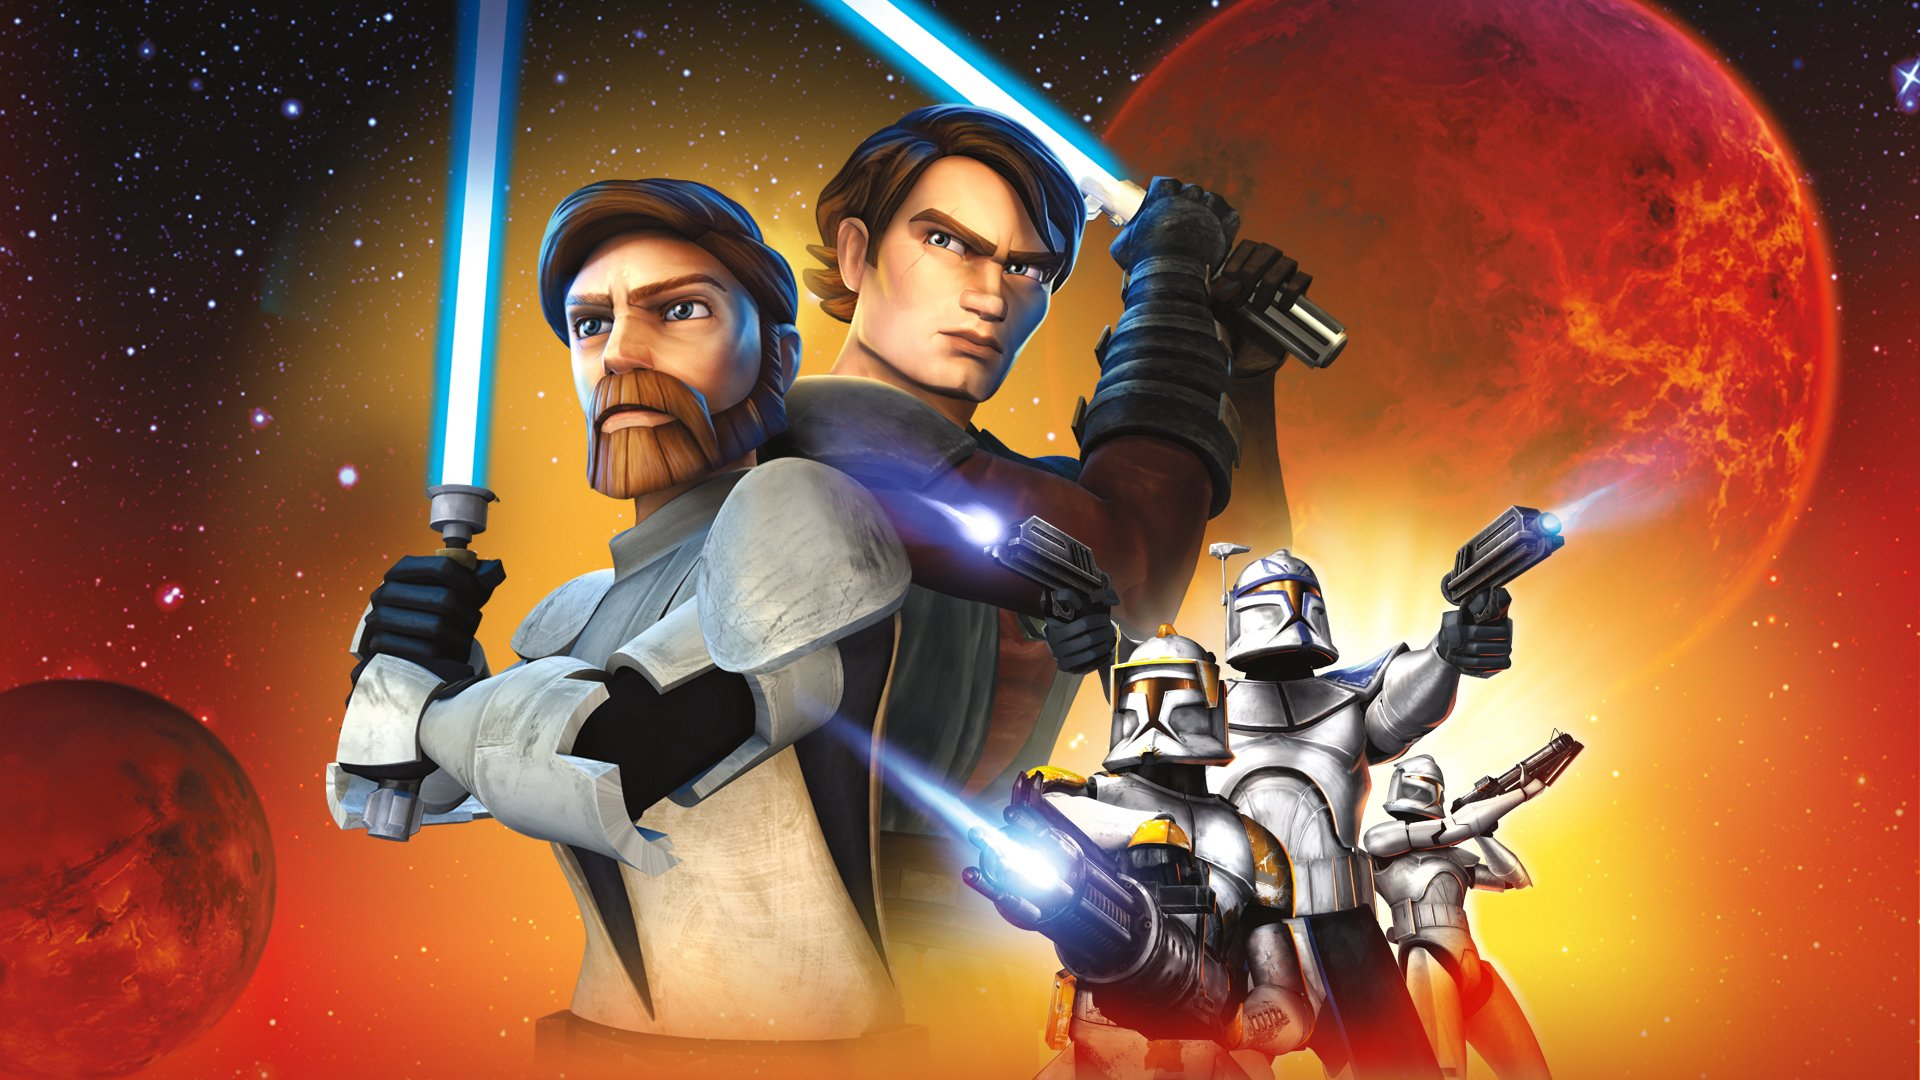 Star Wars The Clone Wars Wallpaper: 2 Star Wars: The Clone Wars